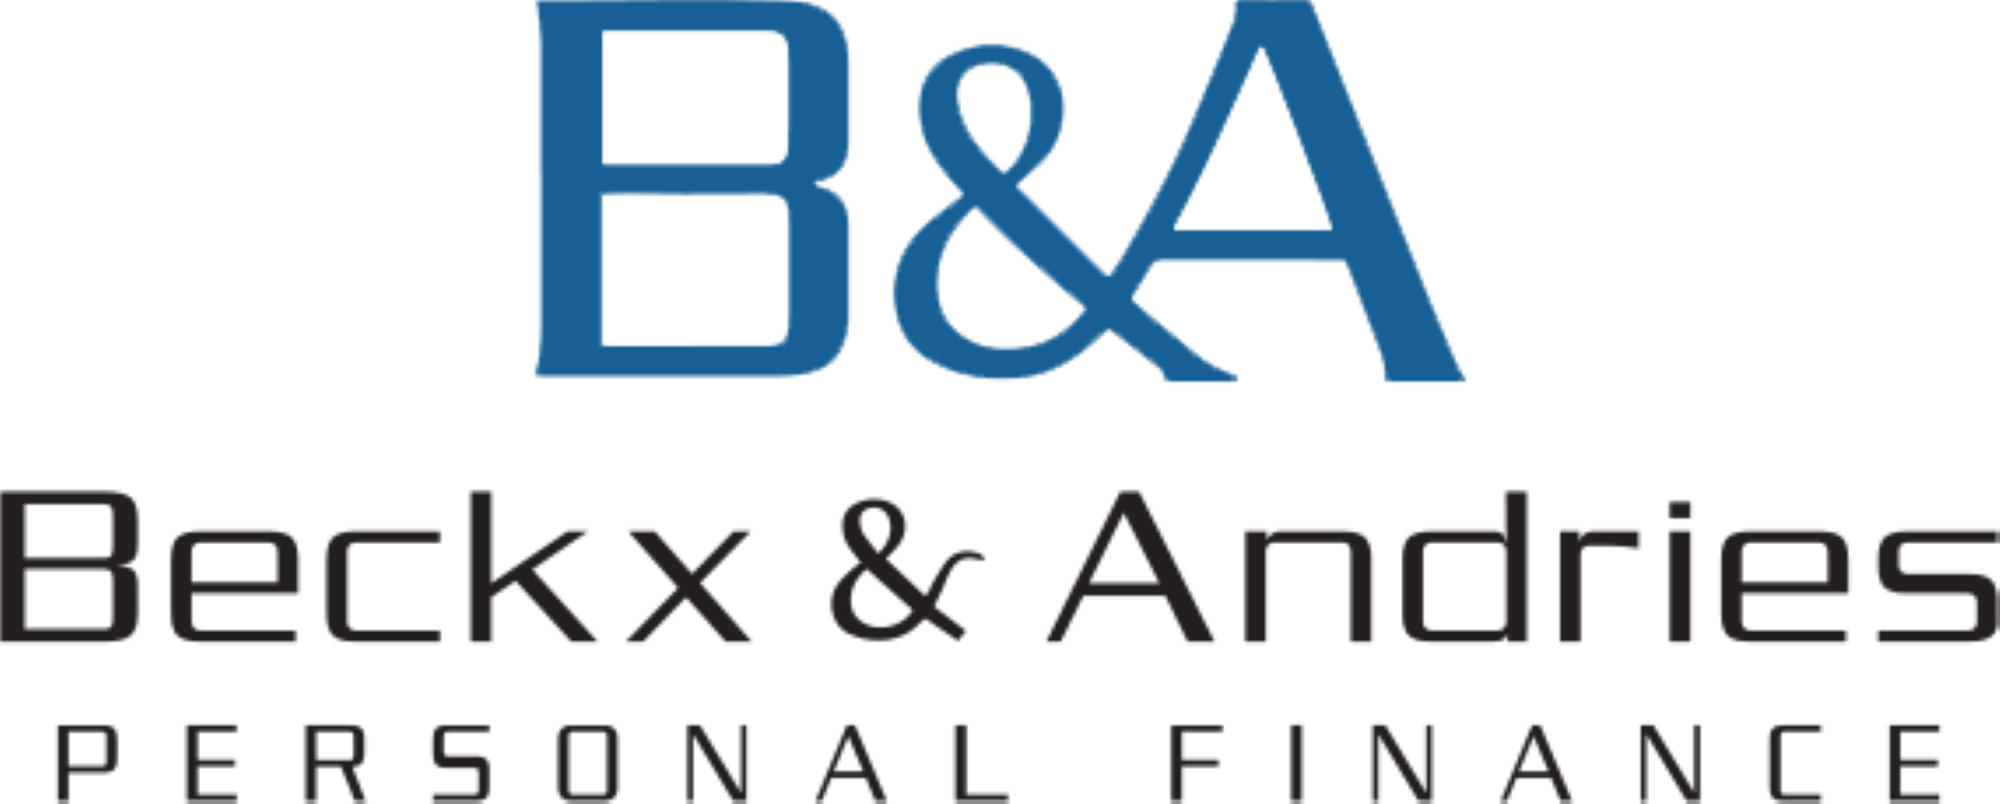 B & A - Beckx & Andries